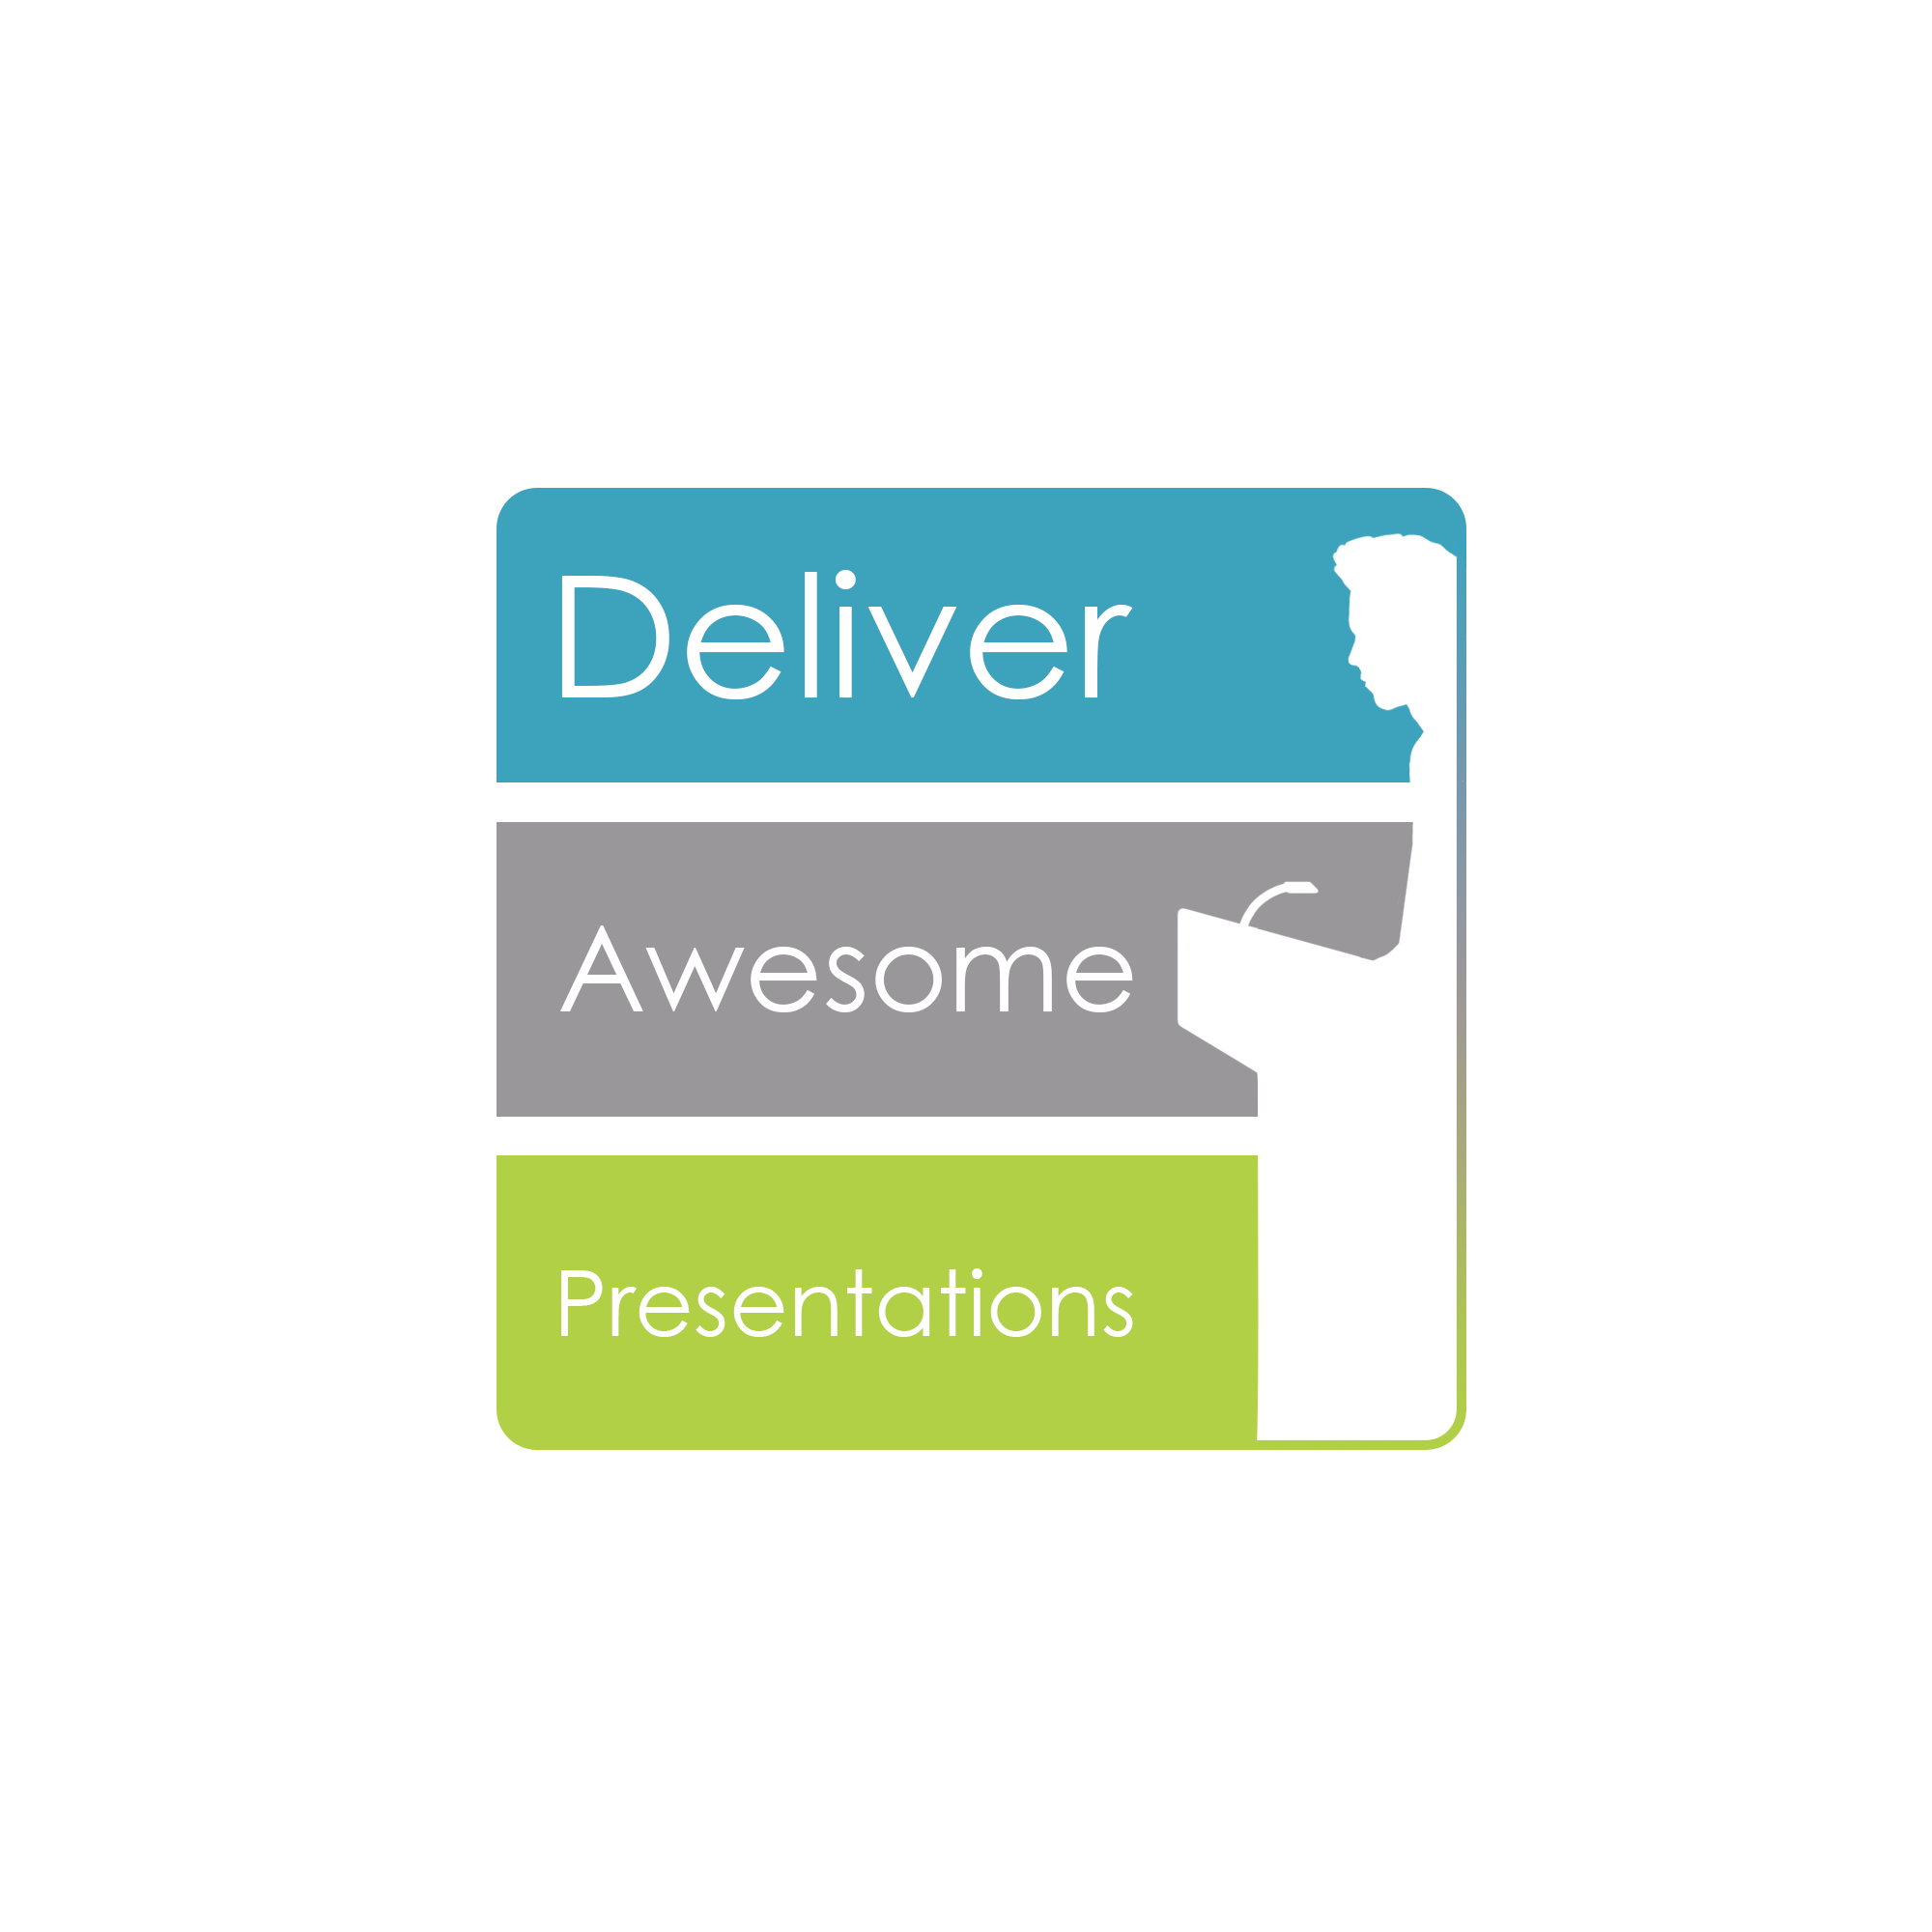 Deliver Awesome Presentations